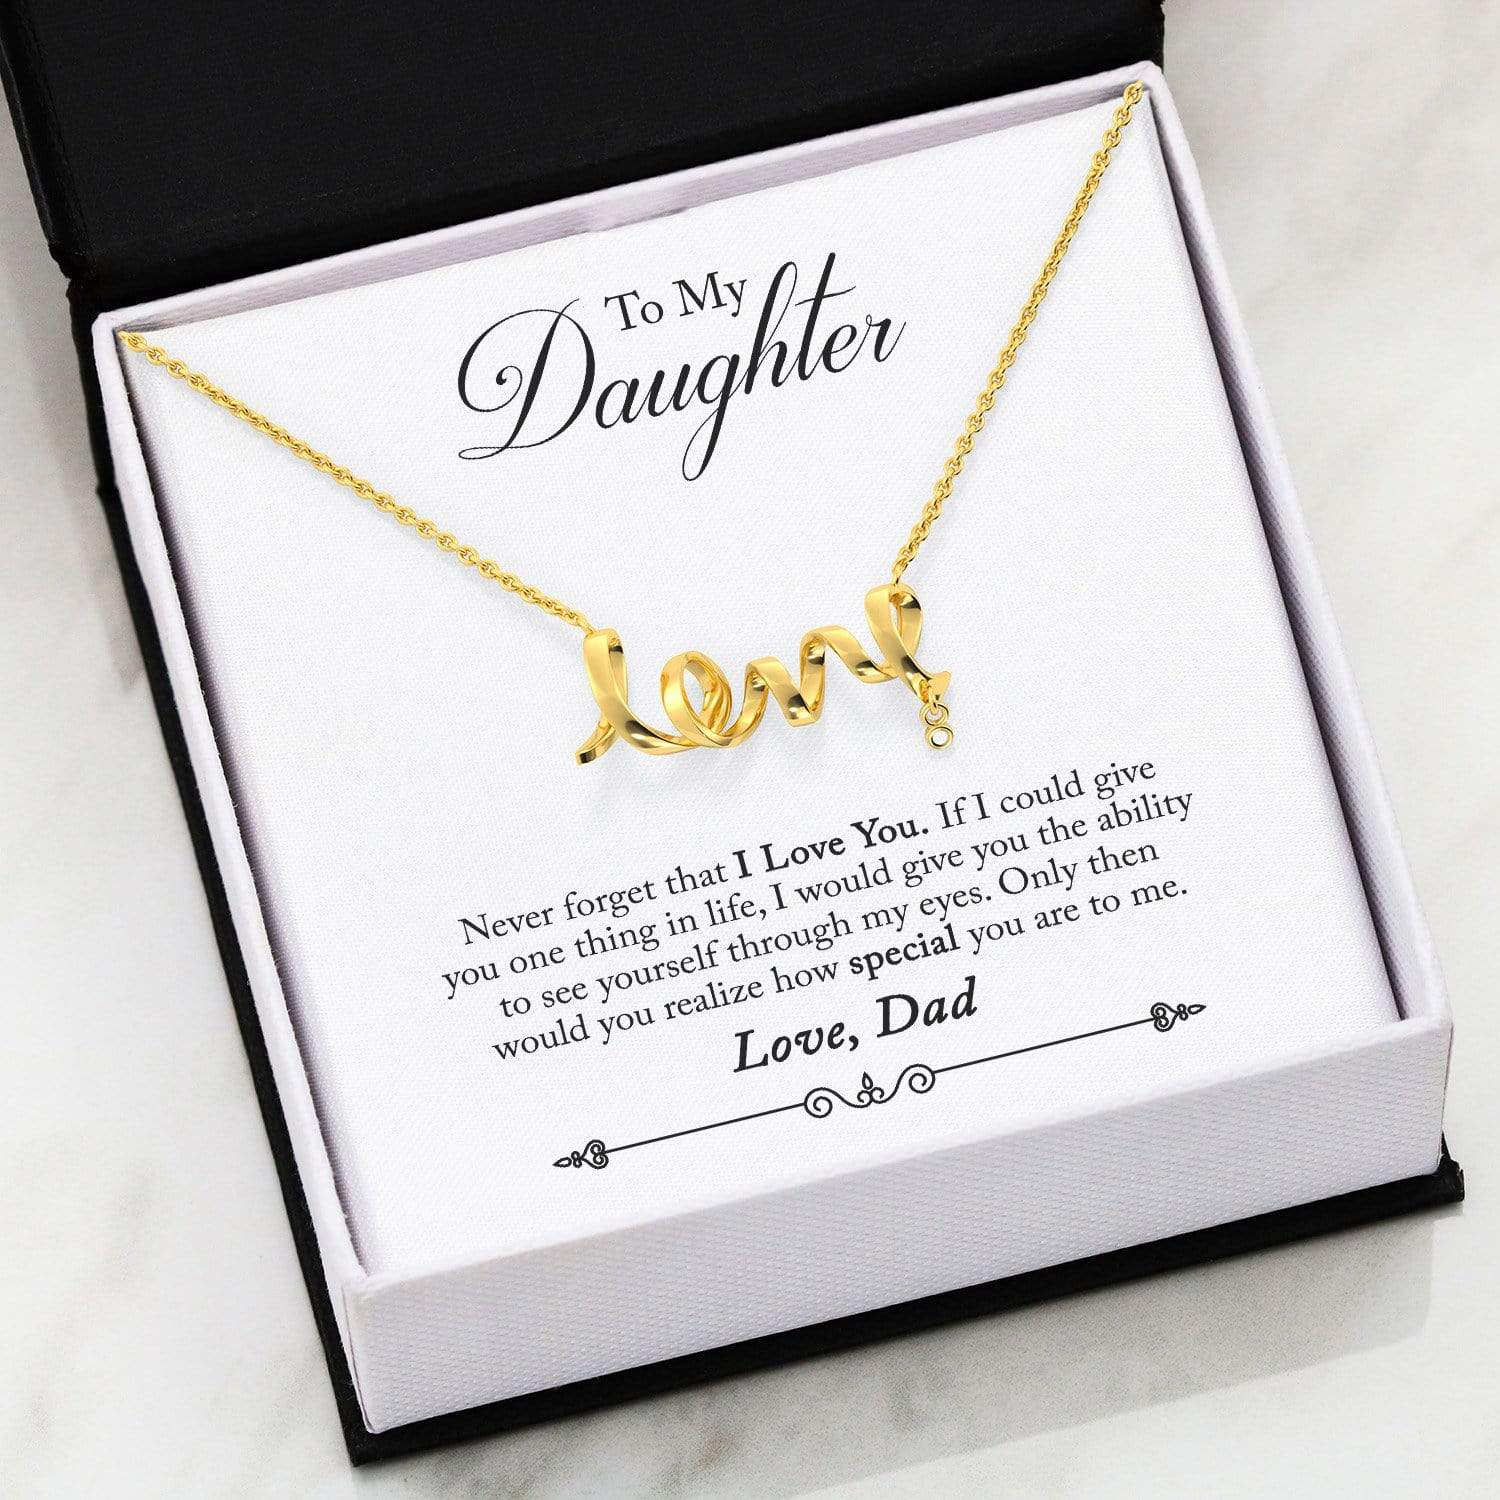 Jewelry Gold Scripted Love (Limited) To My Daughter Scripted Love Necklace - Dad Customfam USAJewelry